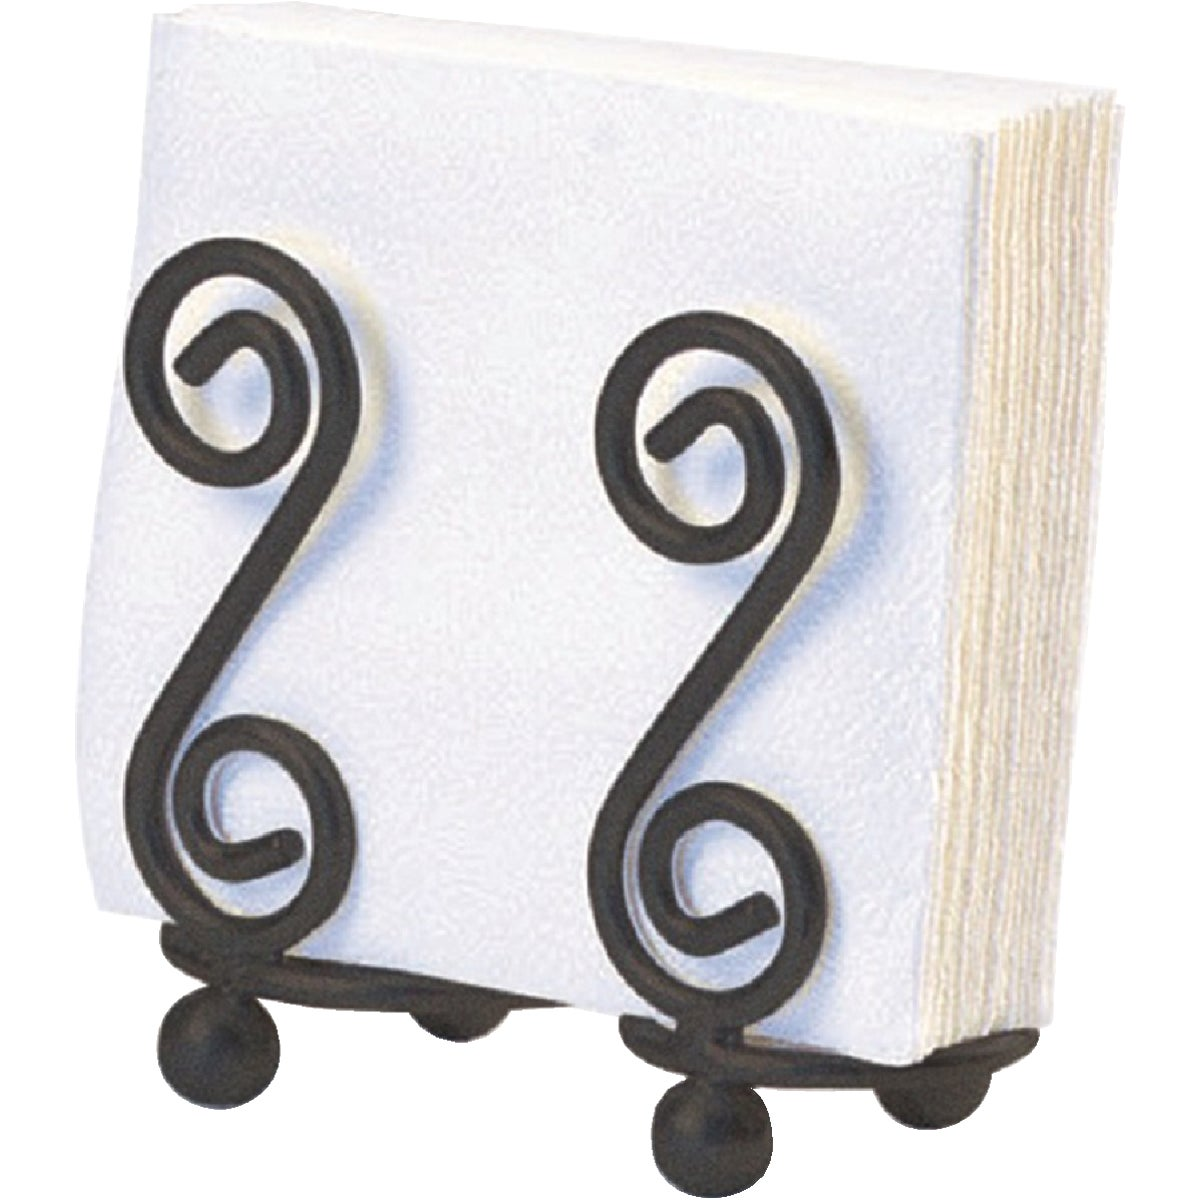 BLACK NAPKIN HOLDER - 44210 by Spectrum Diversified